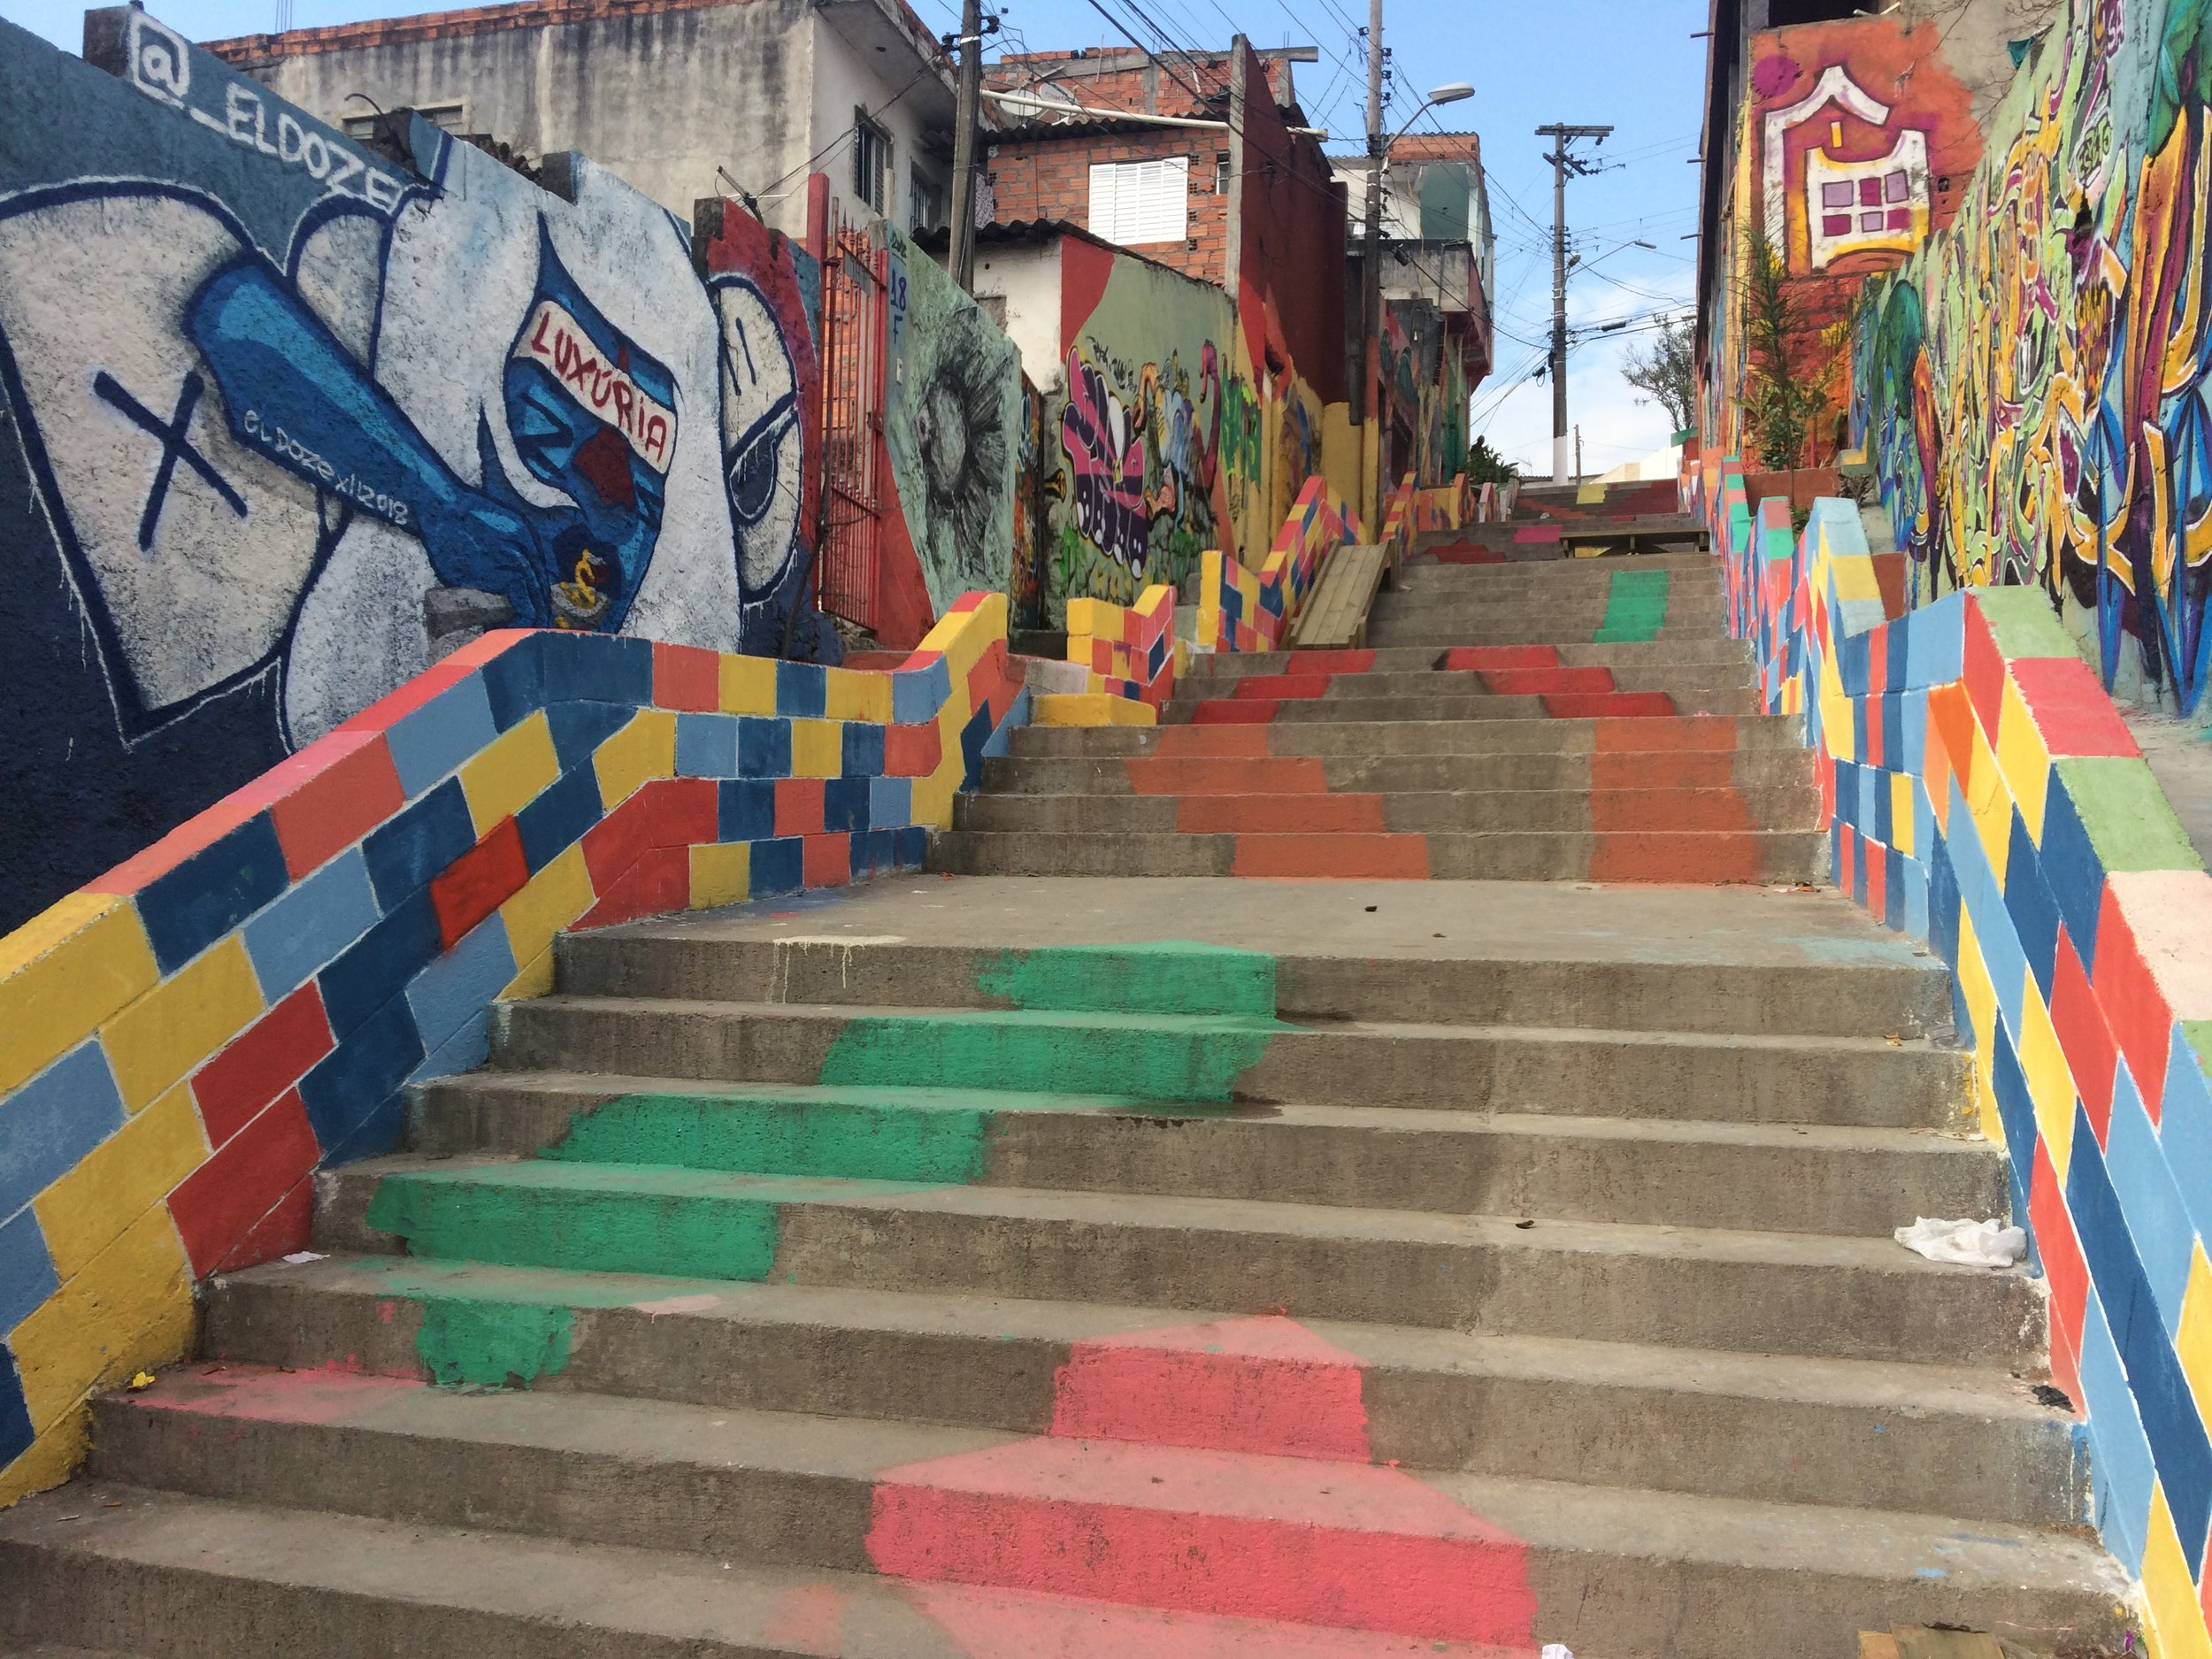 Public intervention transformed this once-neglected staircase into a work of art. Credit: Cidade Ativa